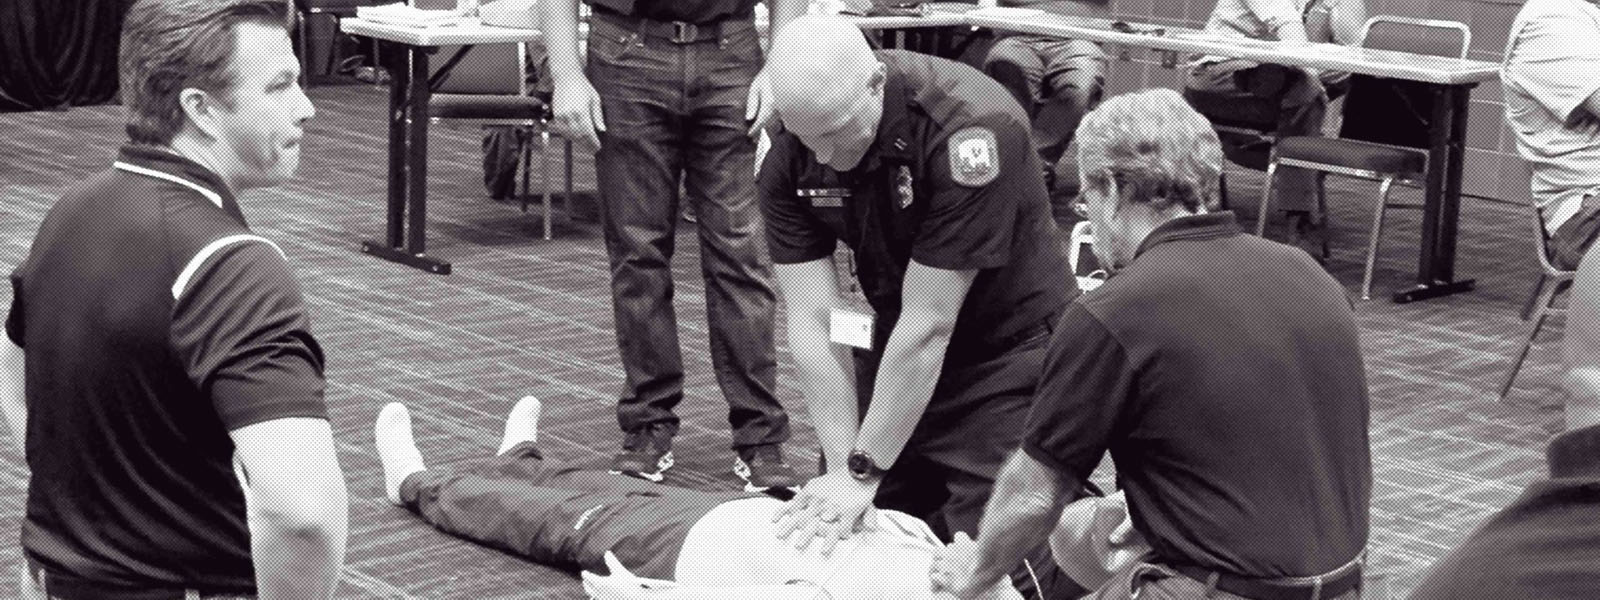 Chest compressions photo